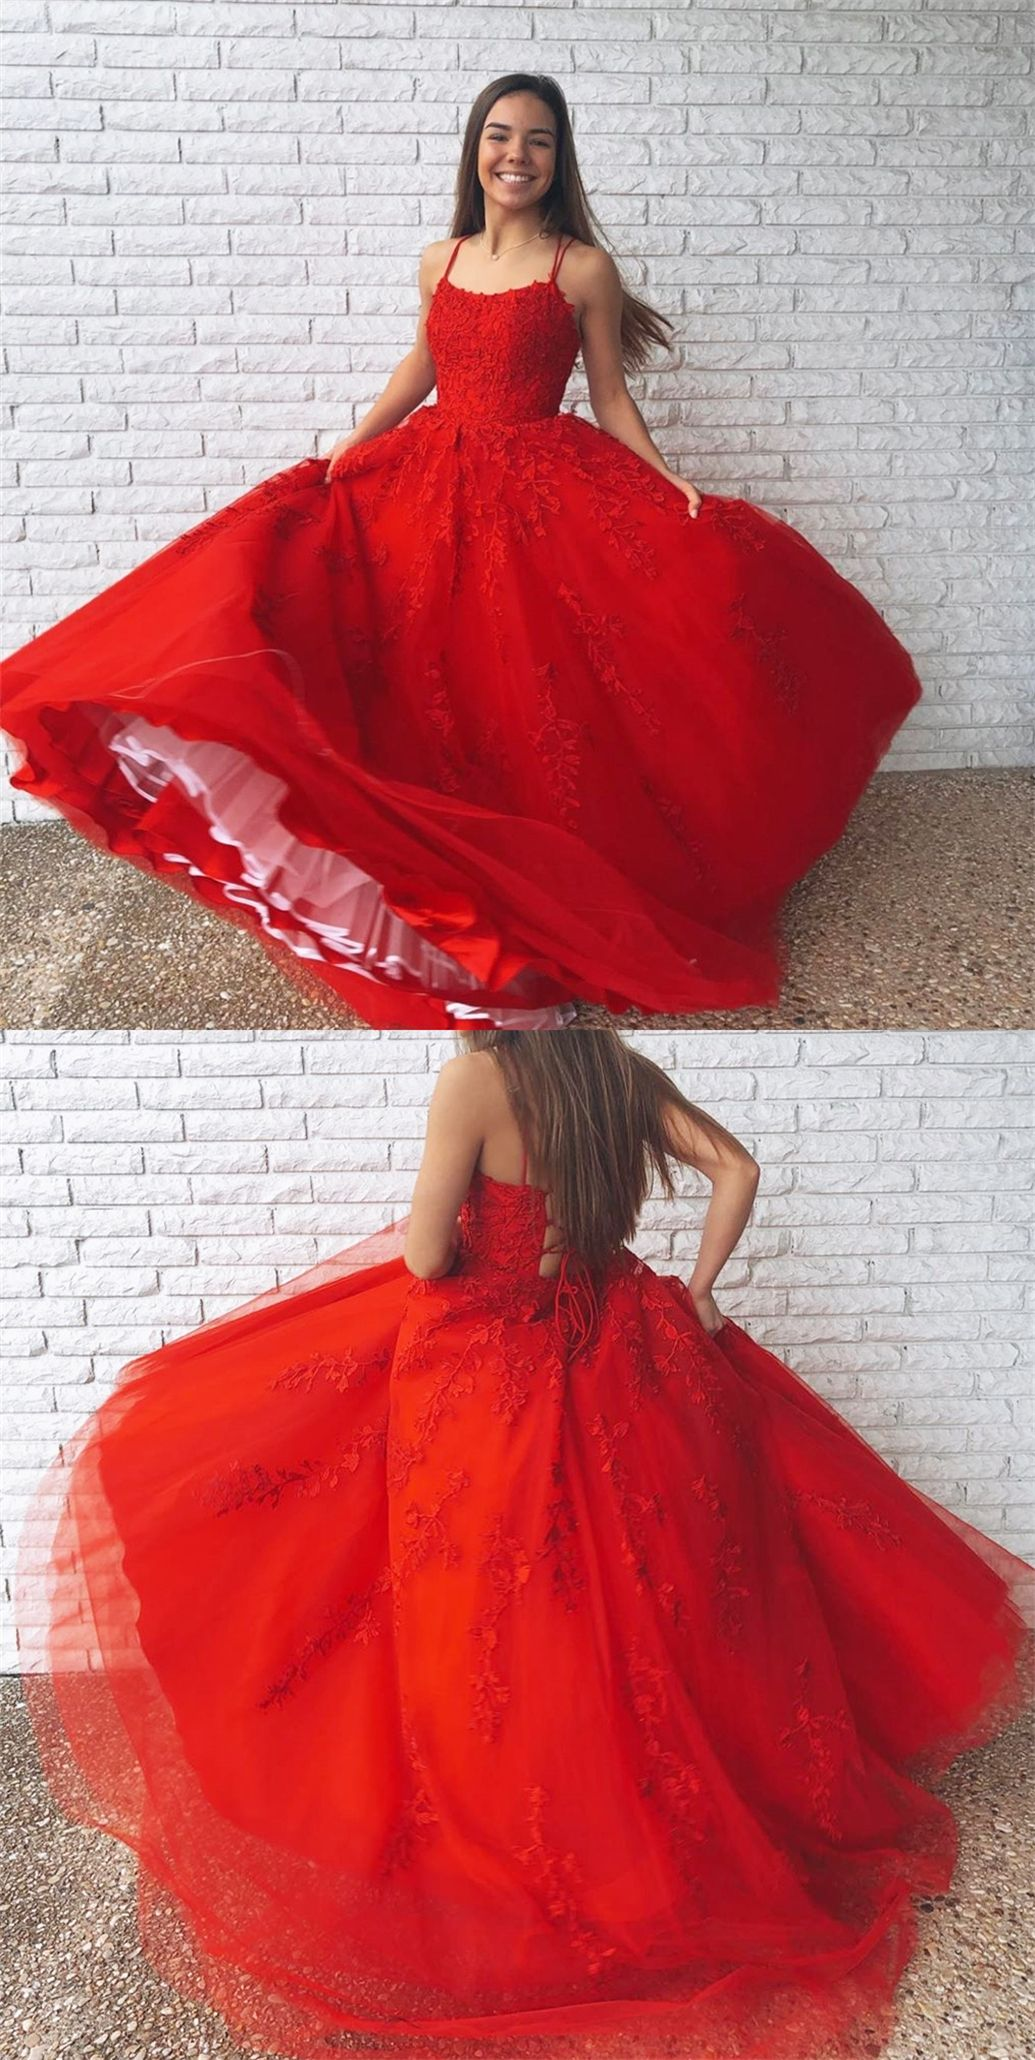 Free Shipping Red Ball Gown Red Ball Gowns Evening Dresses Long Prom Dresses Long [ 2060 x 1035 Pixel ]